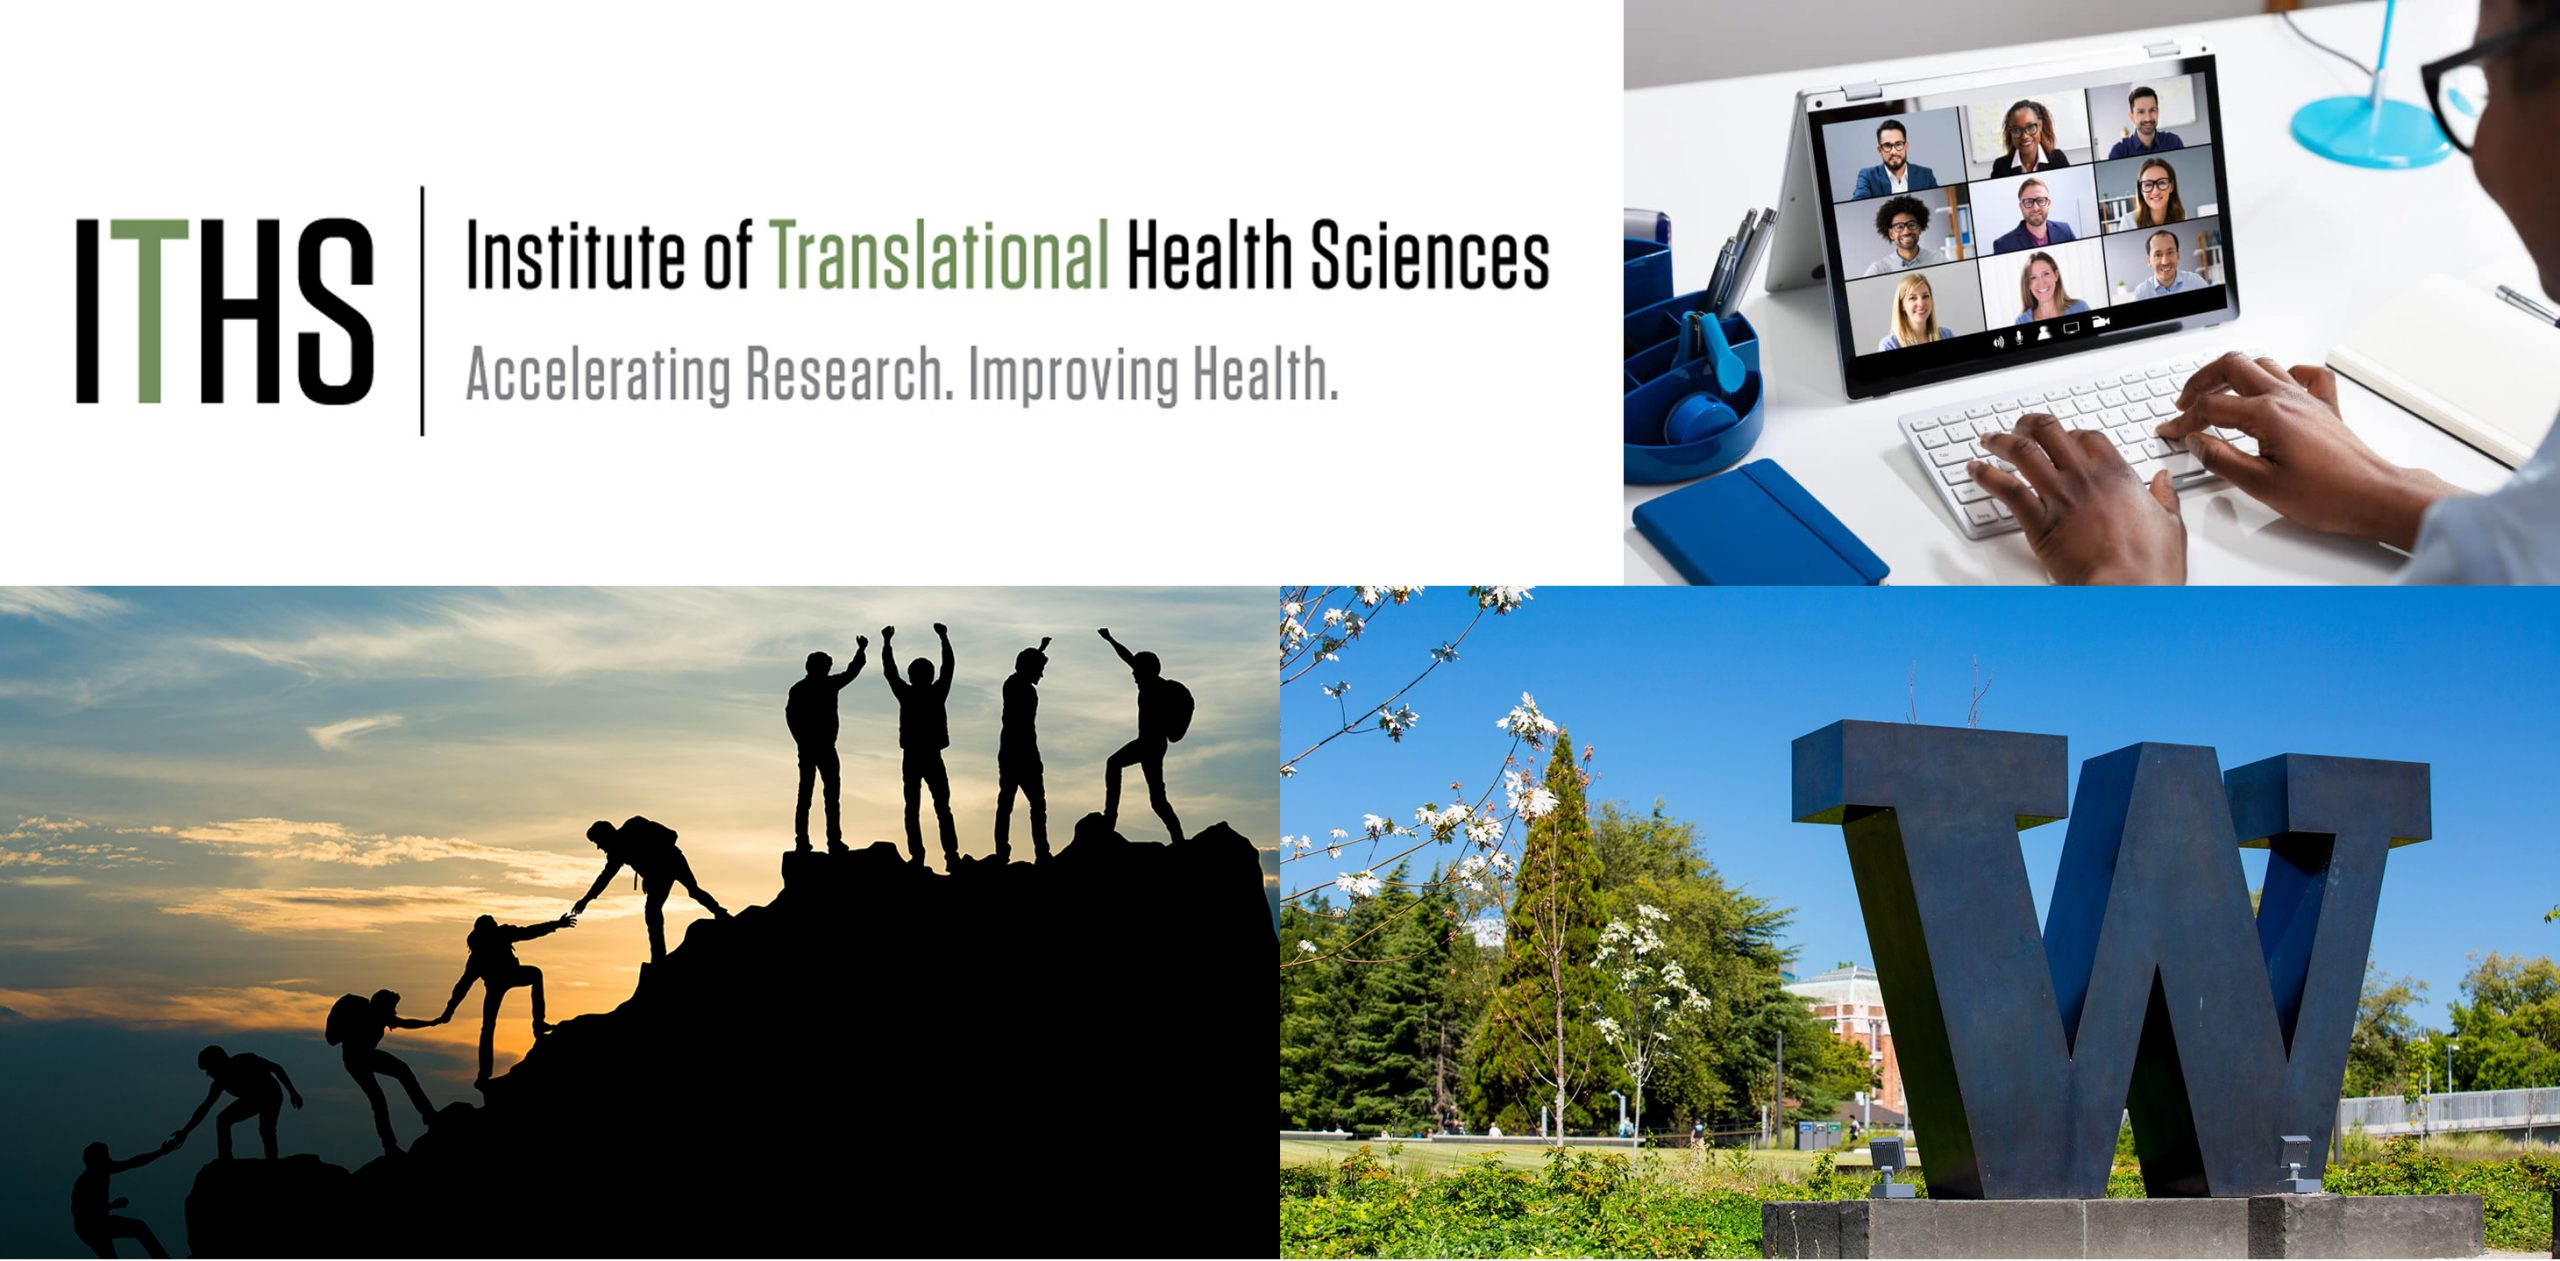 Collage consisting of the Institute of Translational Health Sciences logo, W sculpture, team web conference, and team reaching a mountain summit.